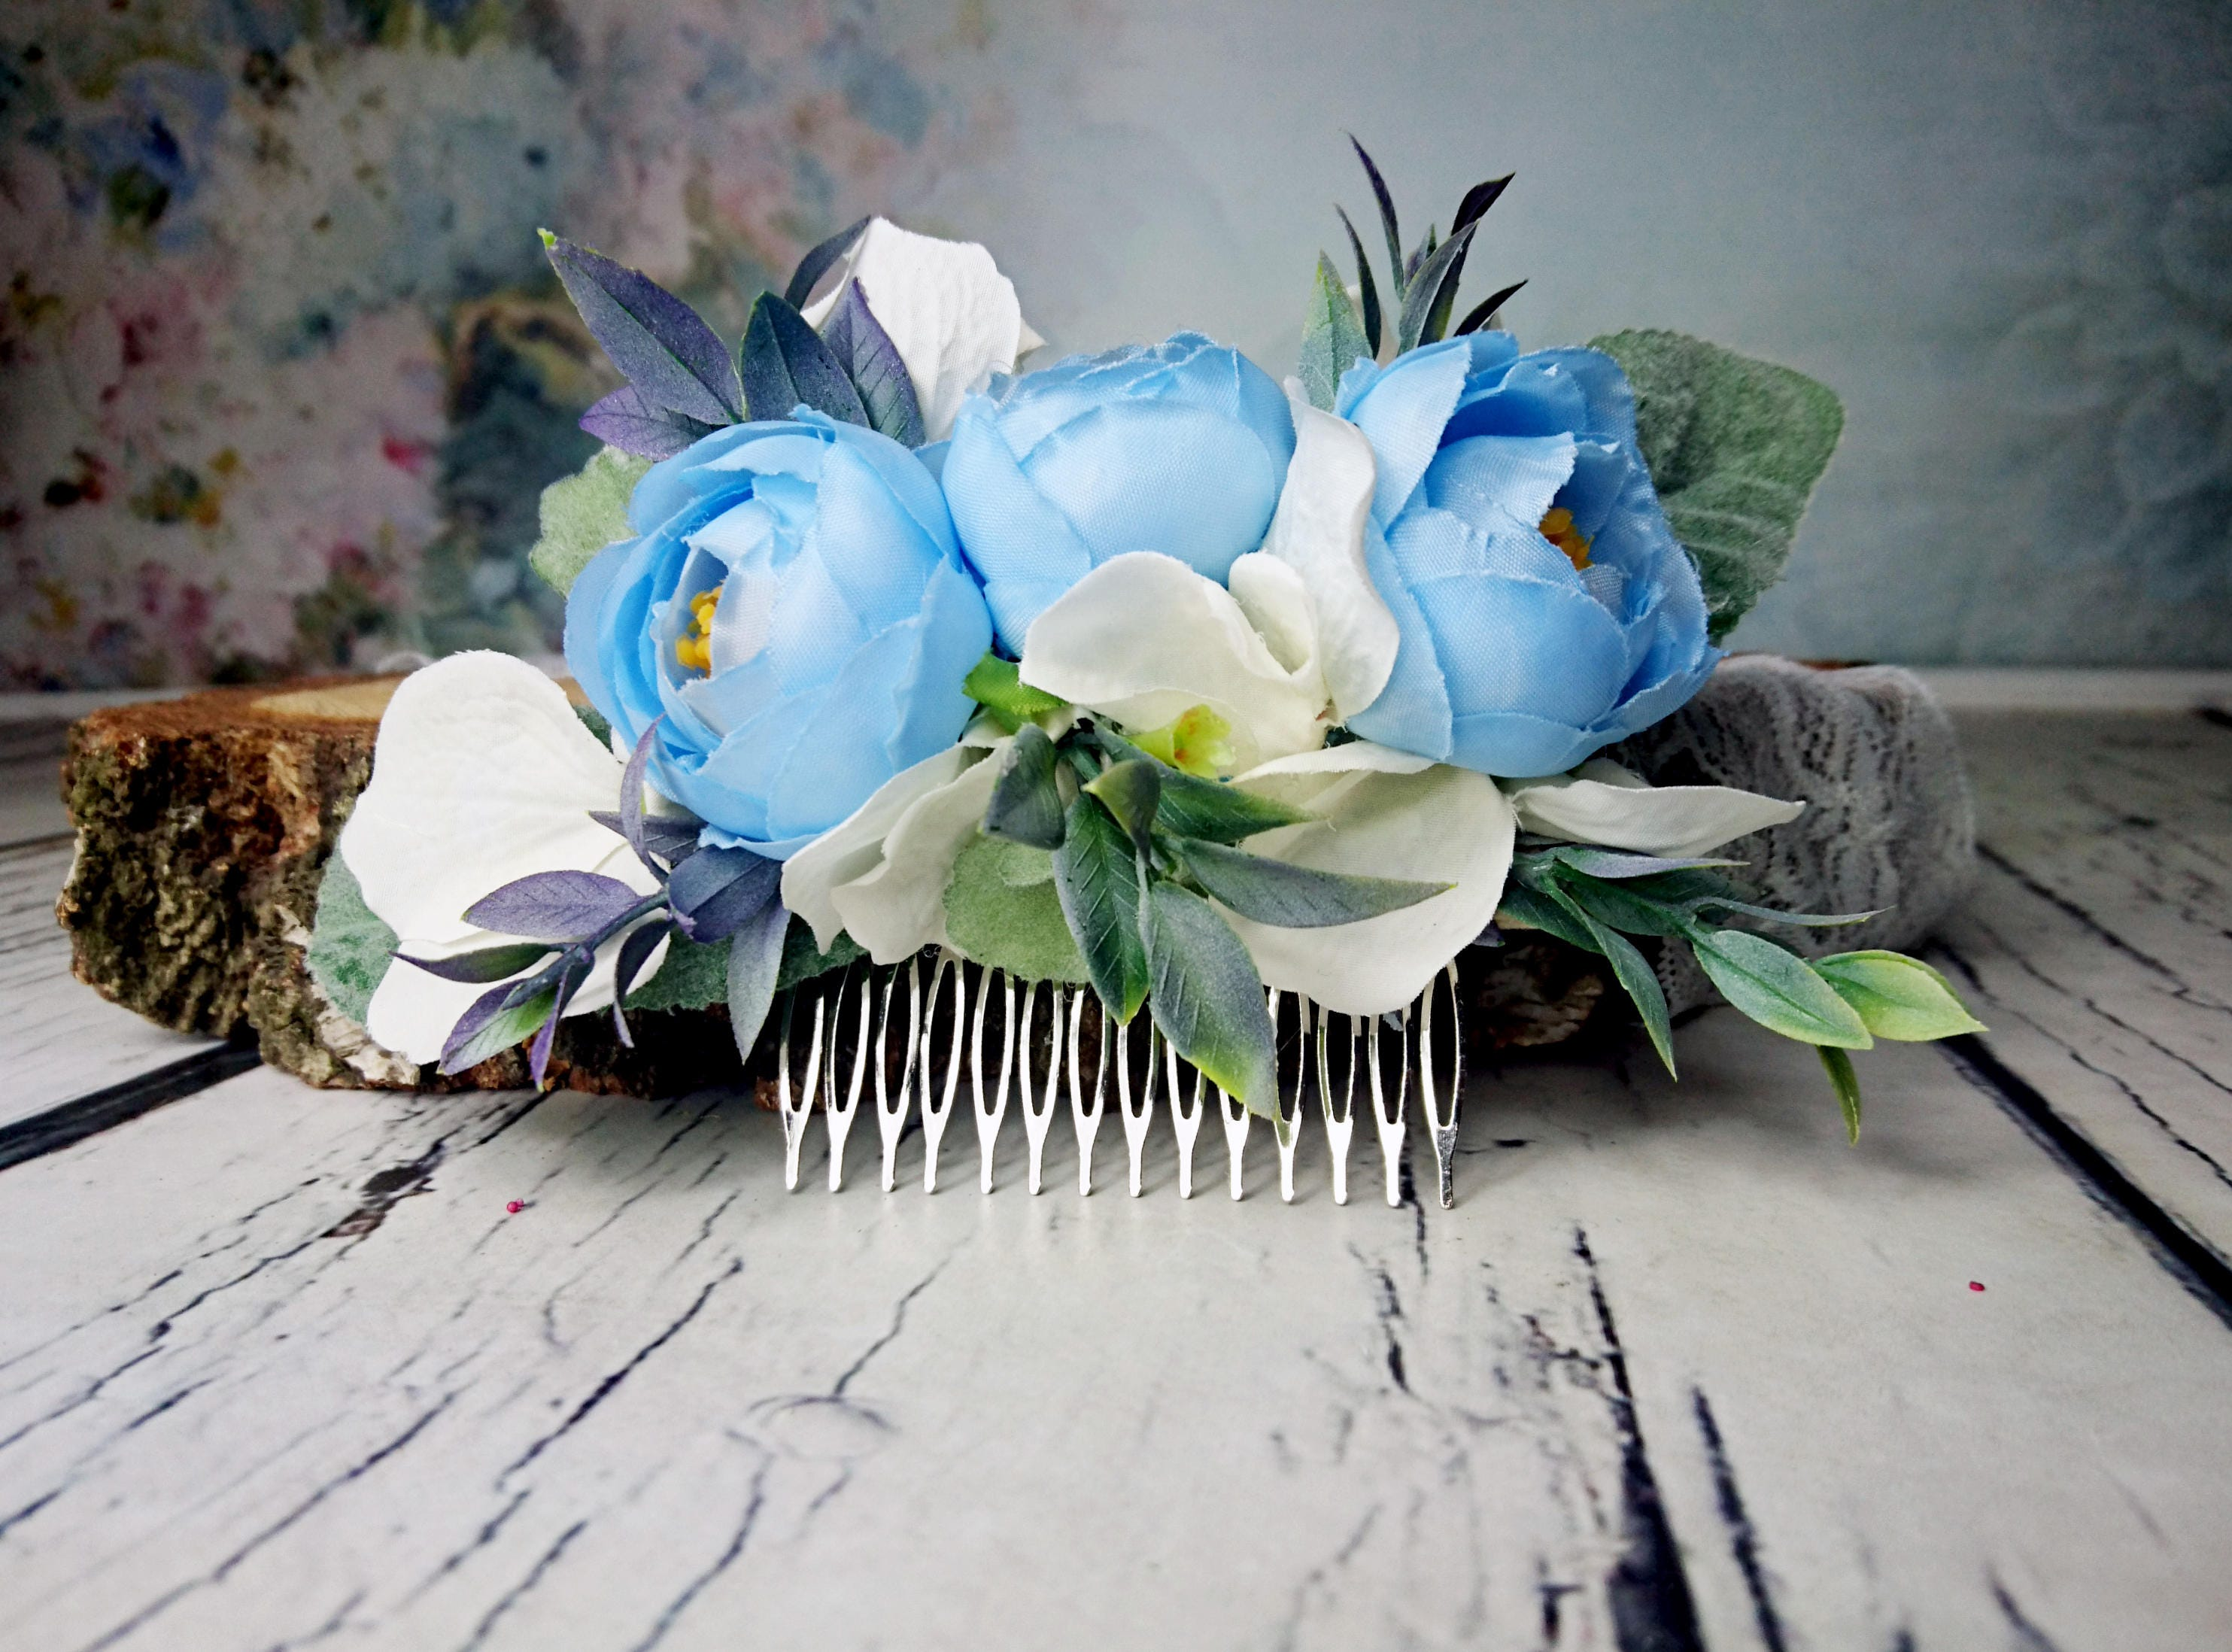 Pastel blue white greenery cold green rustic hair comb silk flowers pastel blue white greenery cold green rustic hair comb silk flowers peony ranunculus hydrangea dusty miller hair piece bridal accessory izmirmasajfo